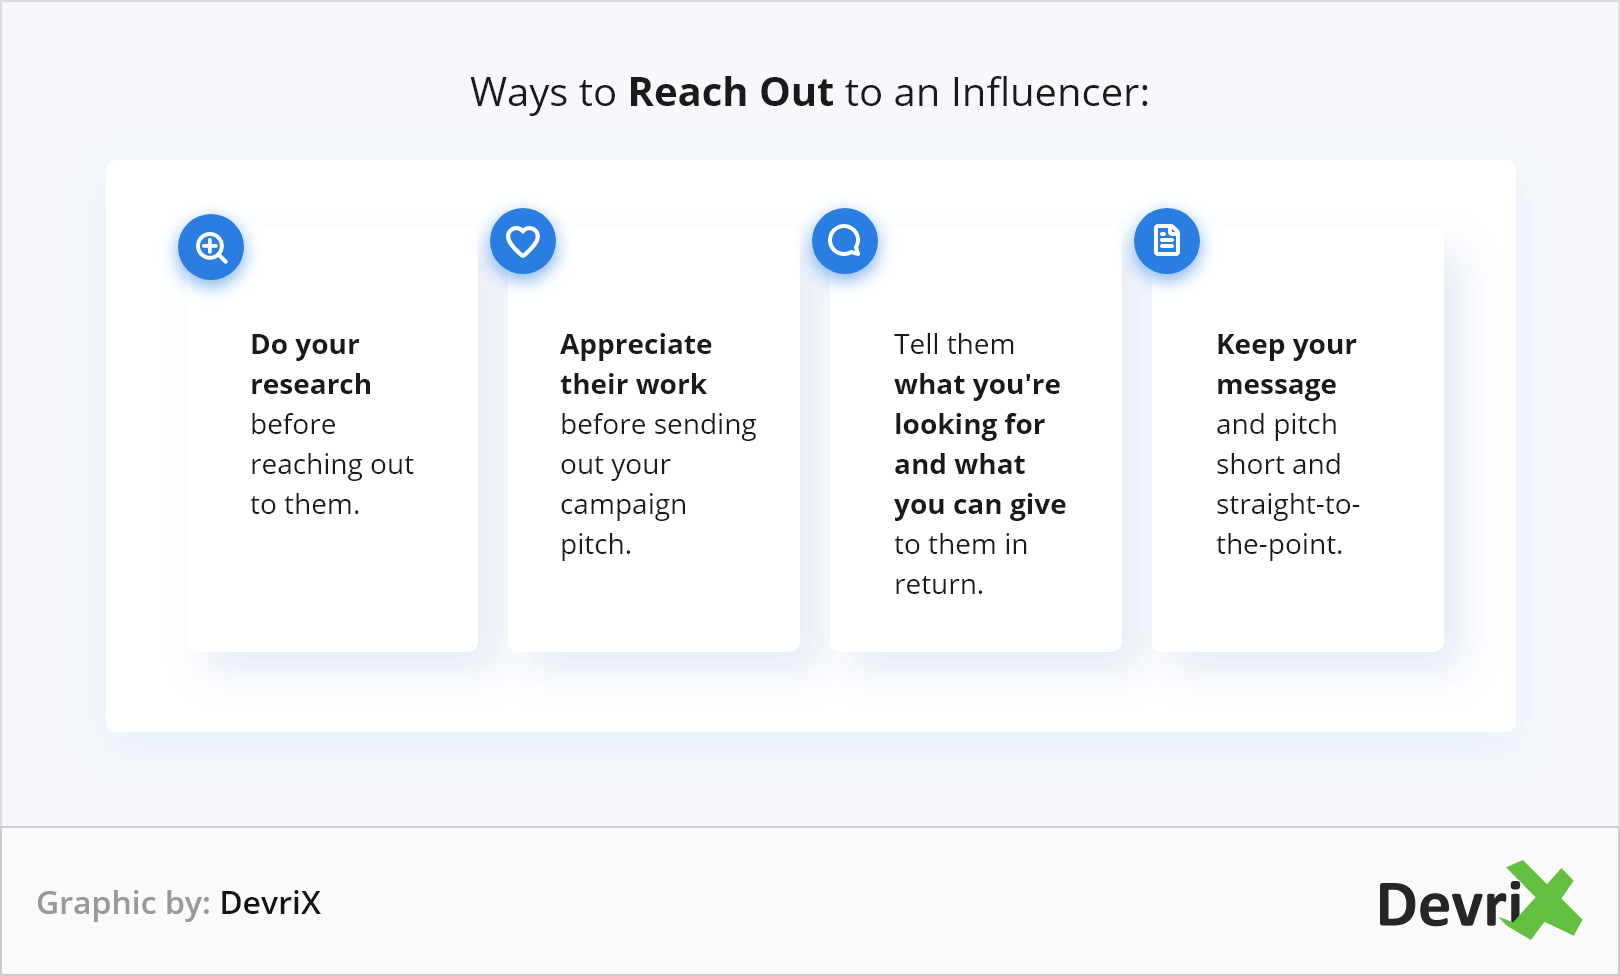 Ways to Reach Out to an Influencer